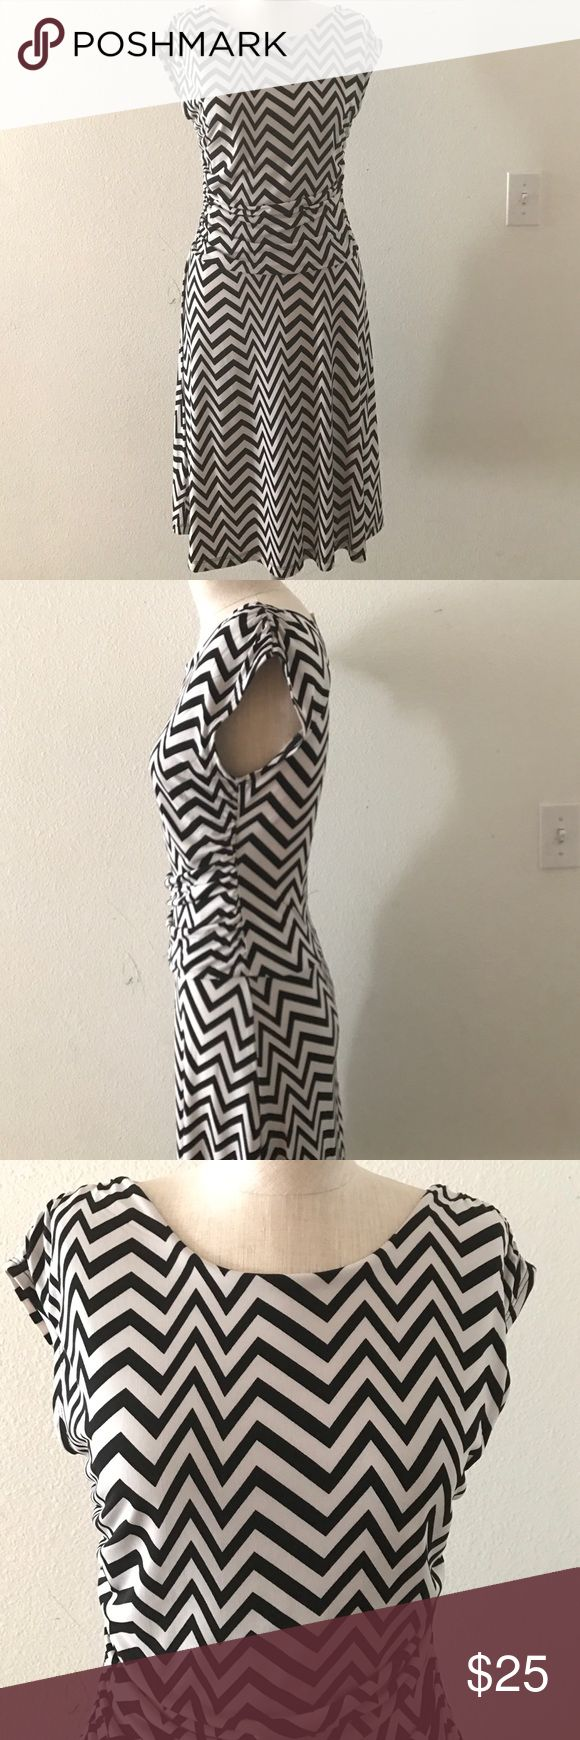 New without tags chevron dress New without tags, never worn. 95% polyester, 5% spandex En Focus Studio Dresses Midi